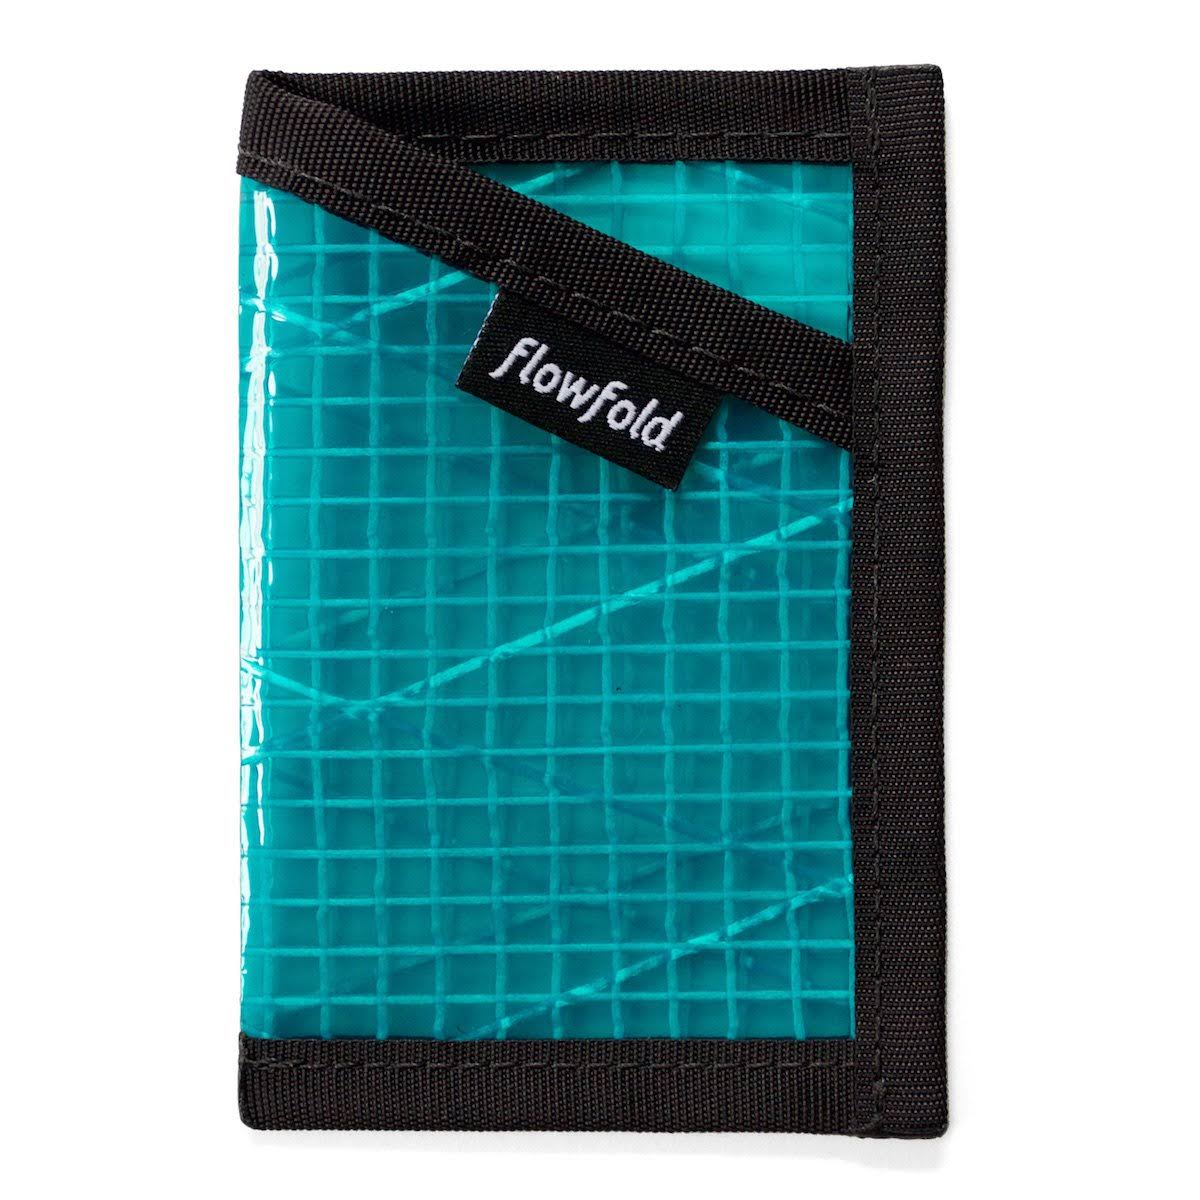 Flowfold Minimalist Card Holder Wallet - Blue